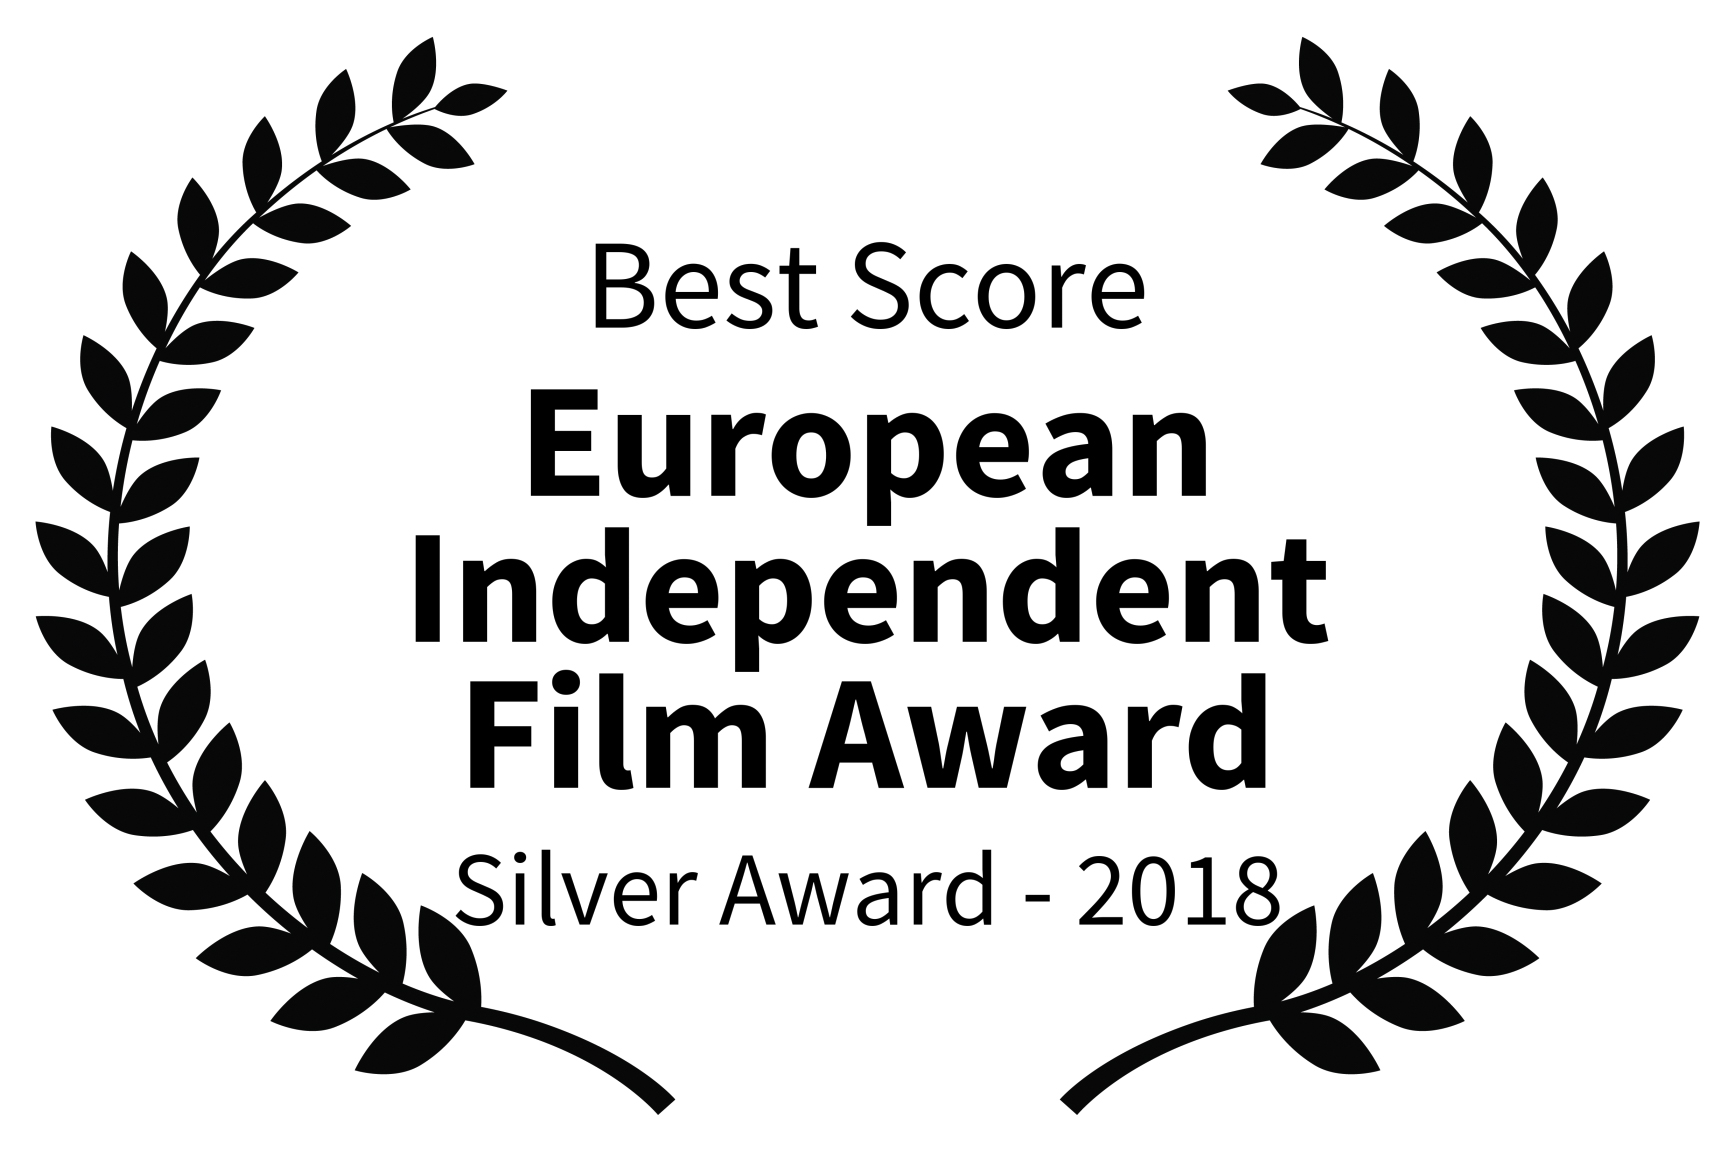 Best Score - European Independent Film Award - Silver Award - 2018.jpg